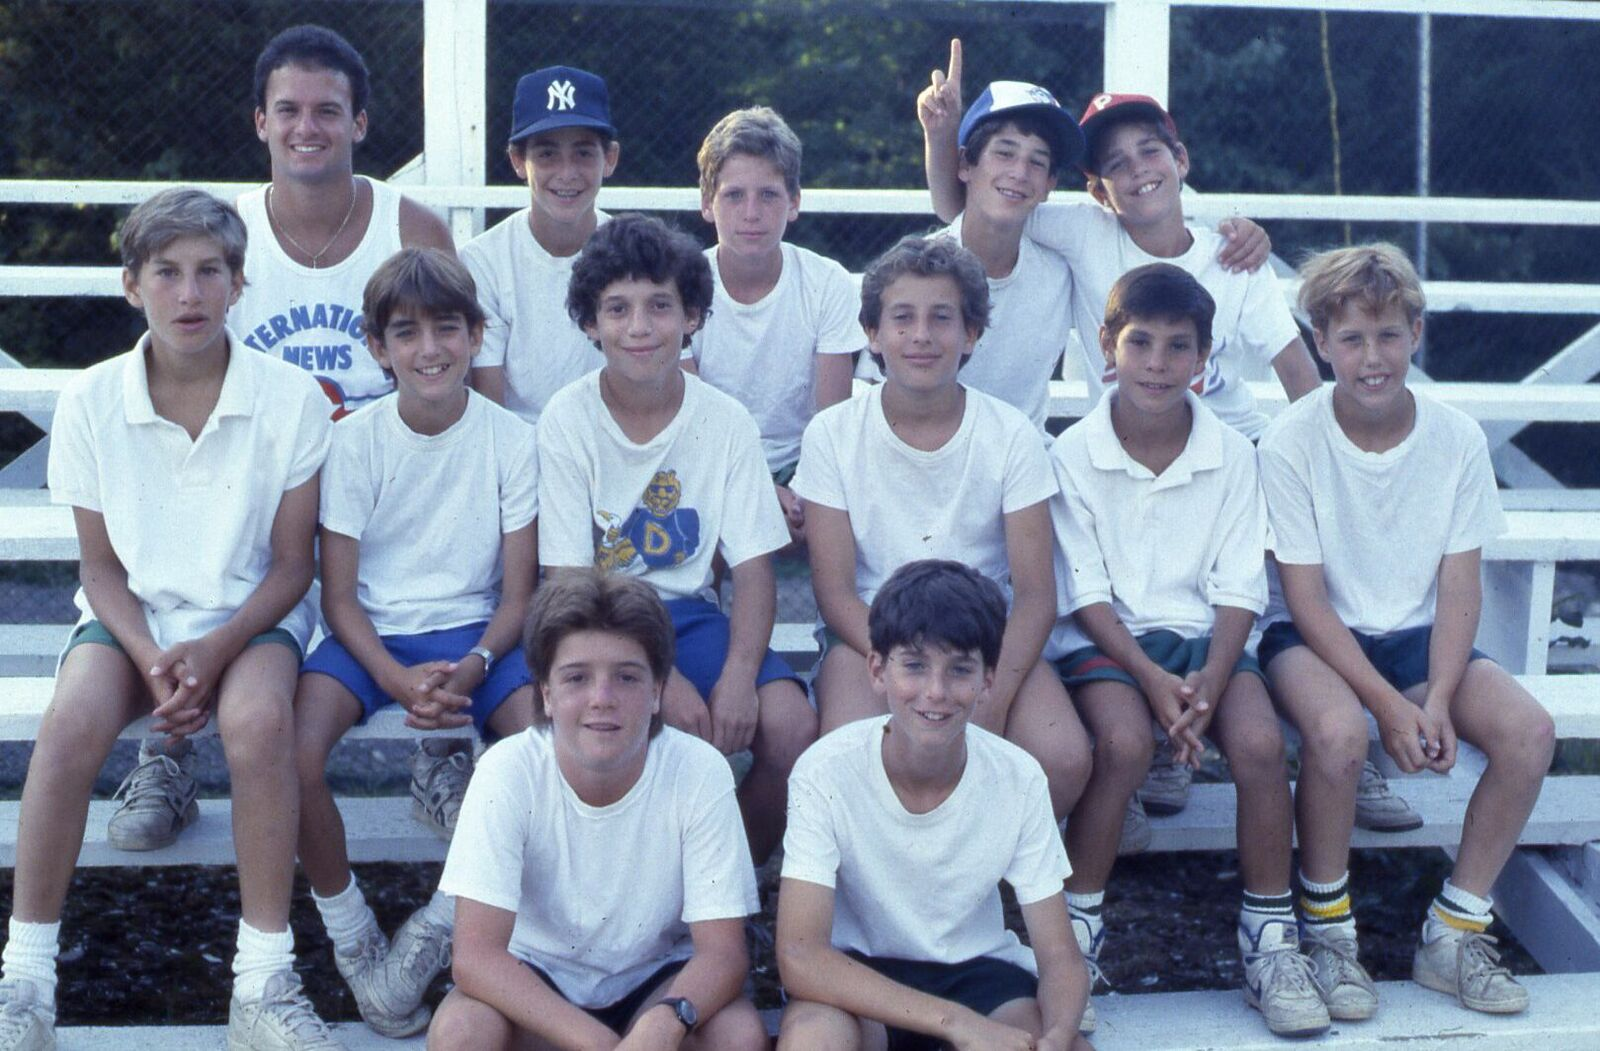 1987—Counselor David Rosh with a few Inters and Subs.